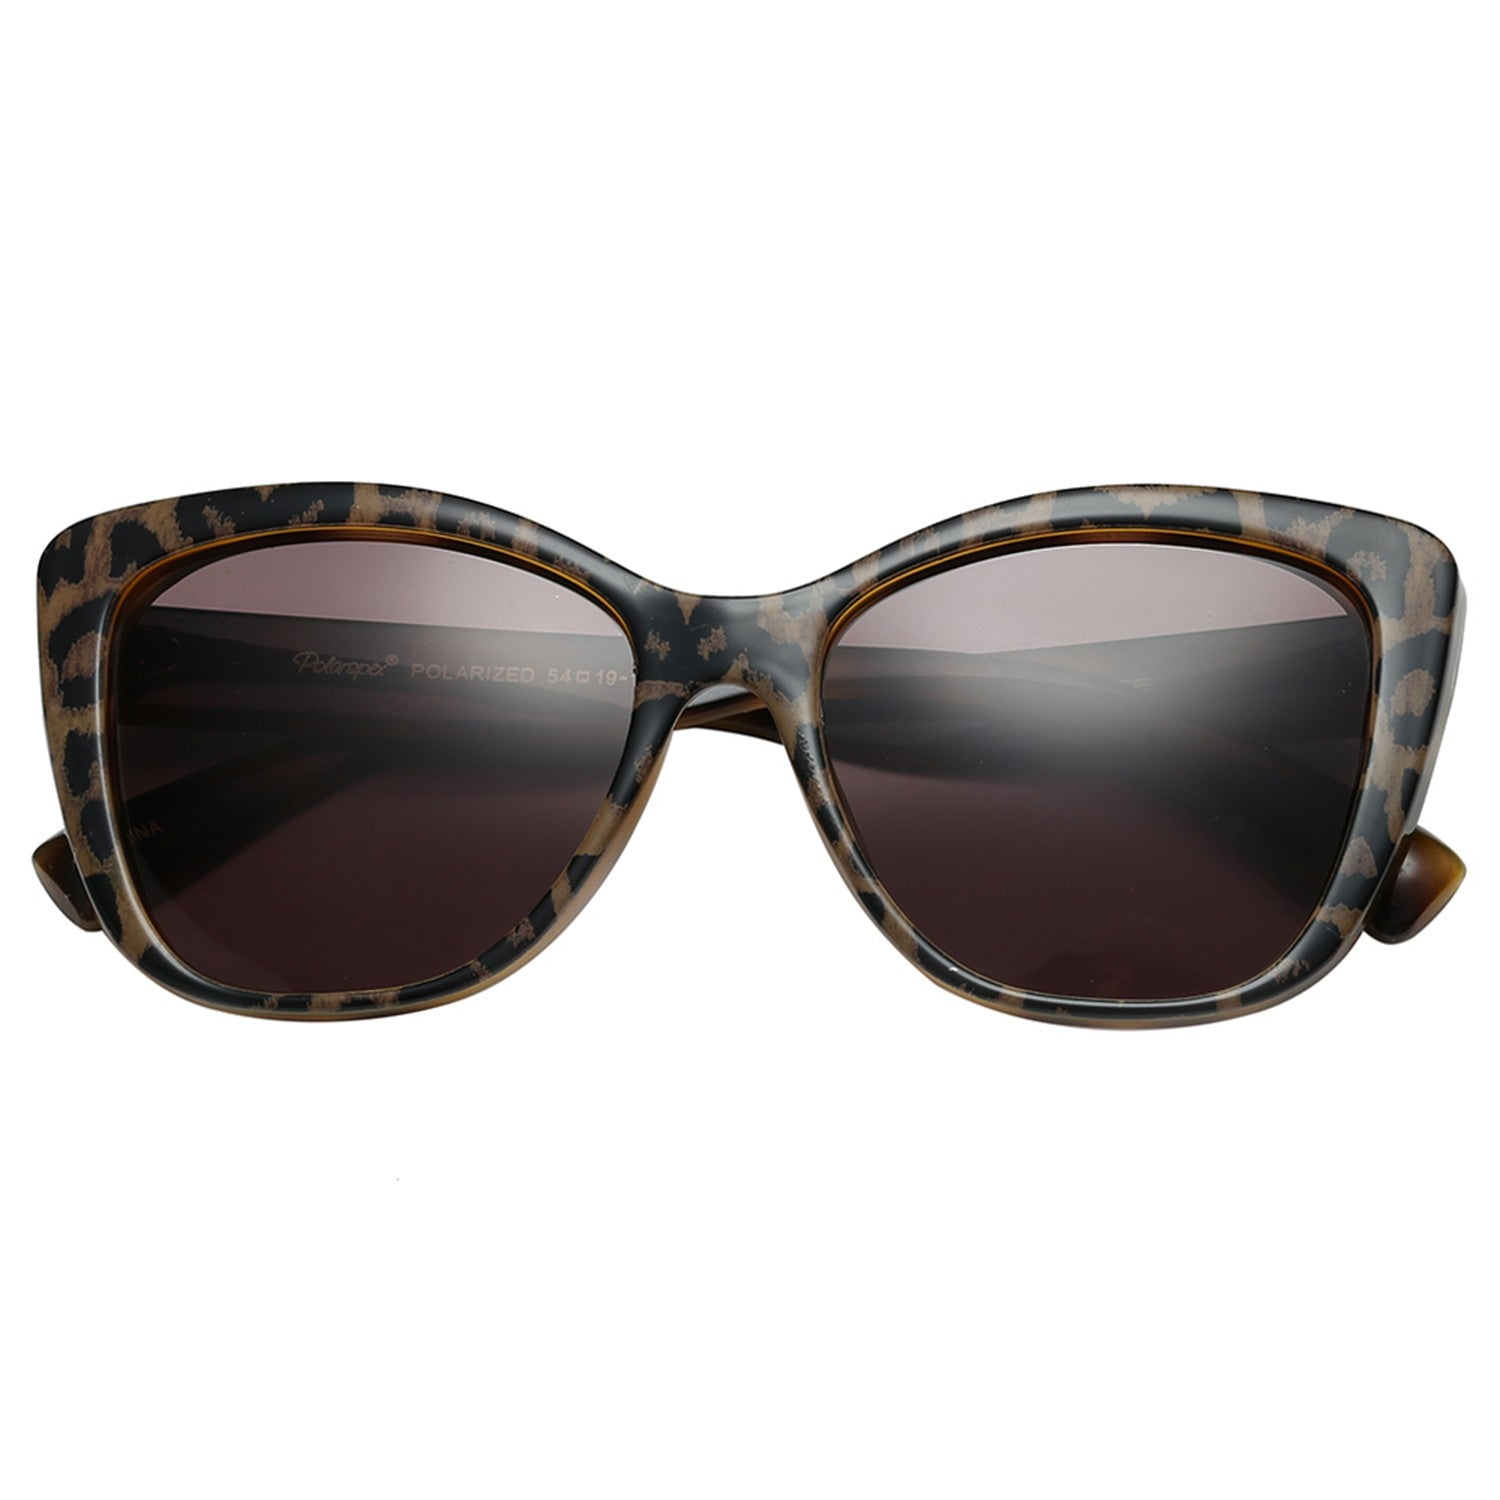 Polarspex Polarized Jackie-O Cat Eyes Style Sunglasses with Leopard Frames and Polarized Smoke Lenses for Women